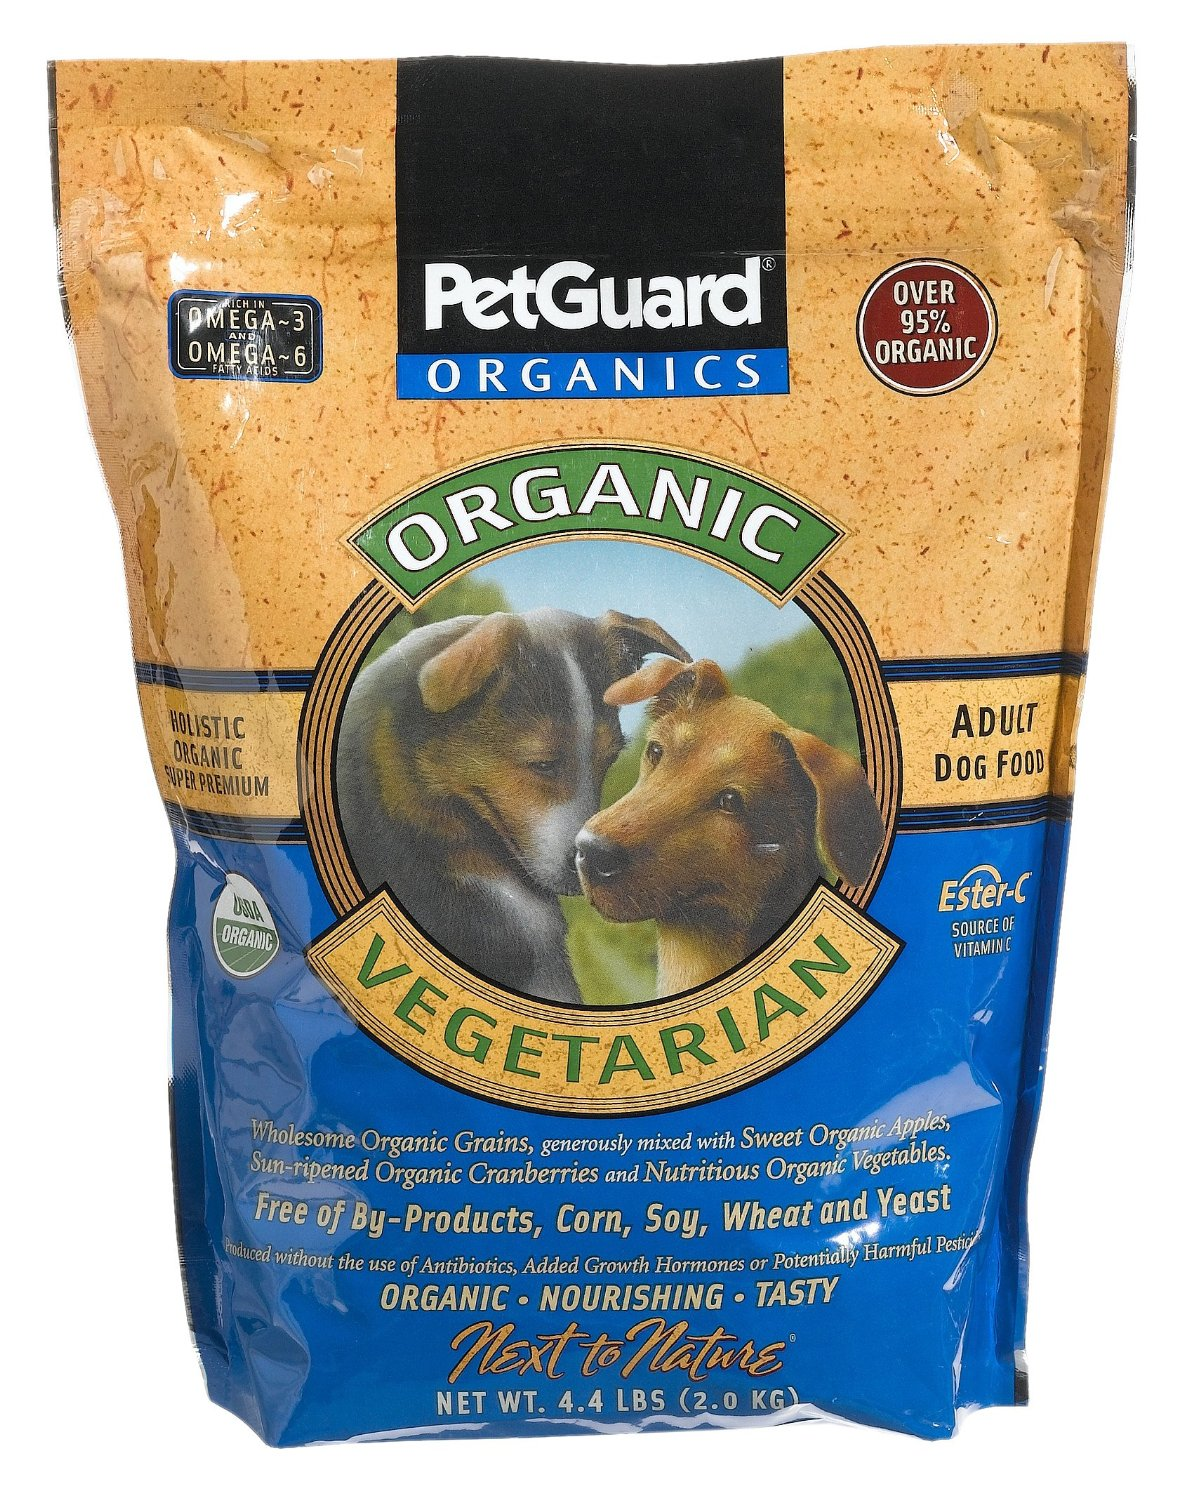 PetGuard Organics Dog Food